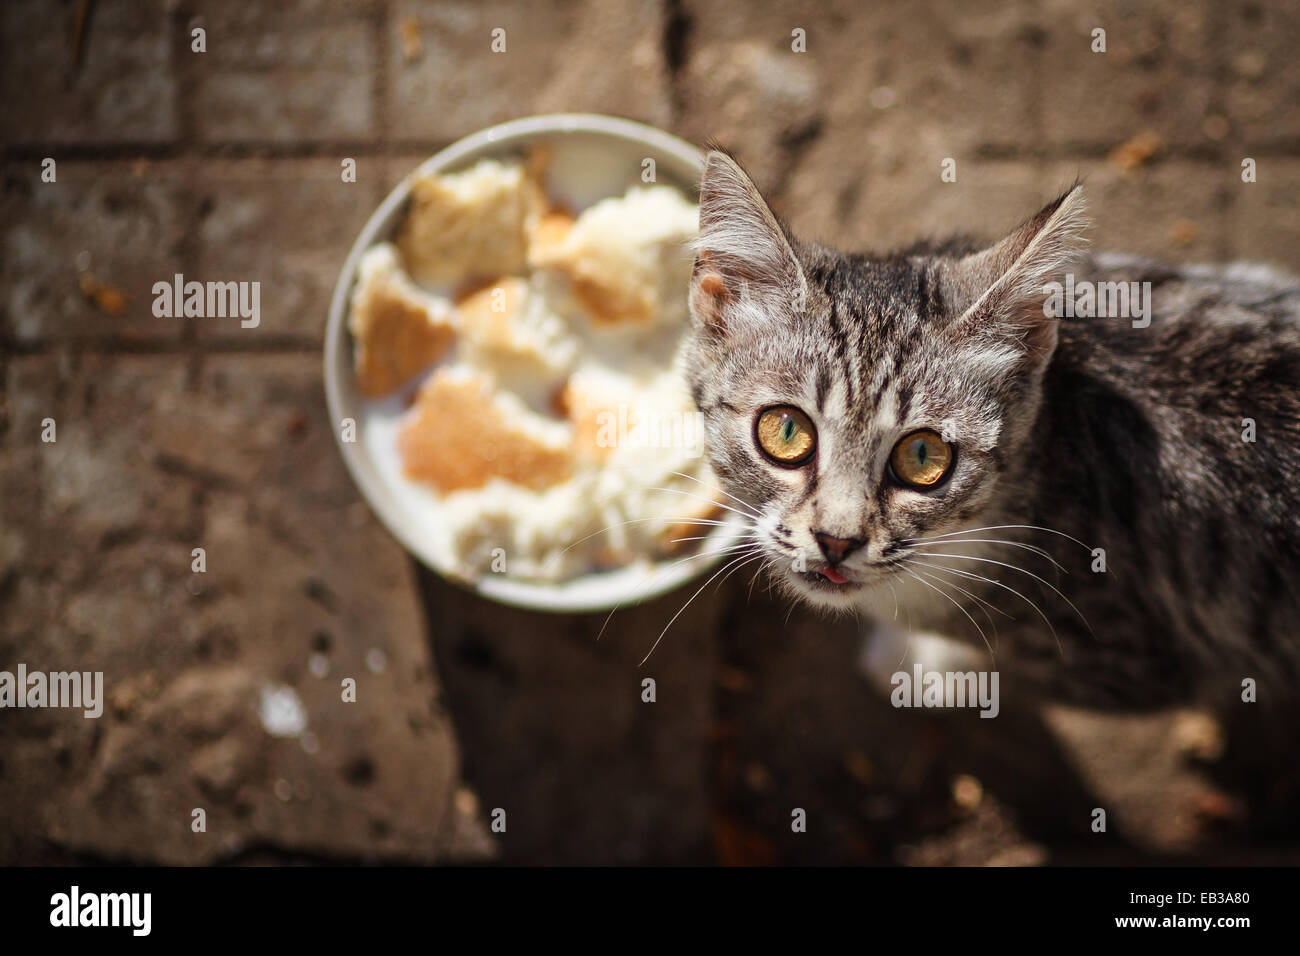 Elevated view of cat and food bowl - Stock Image